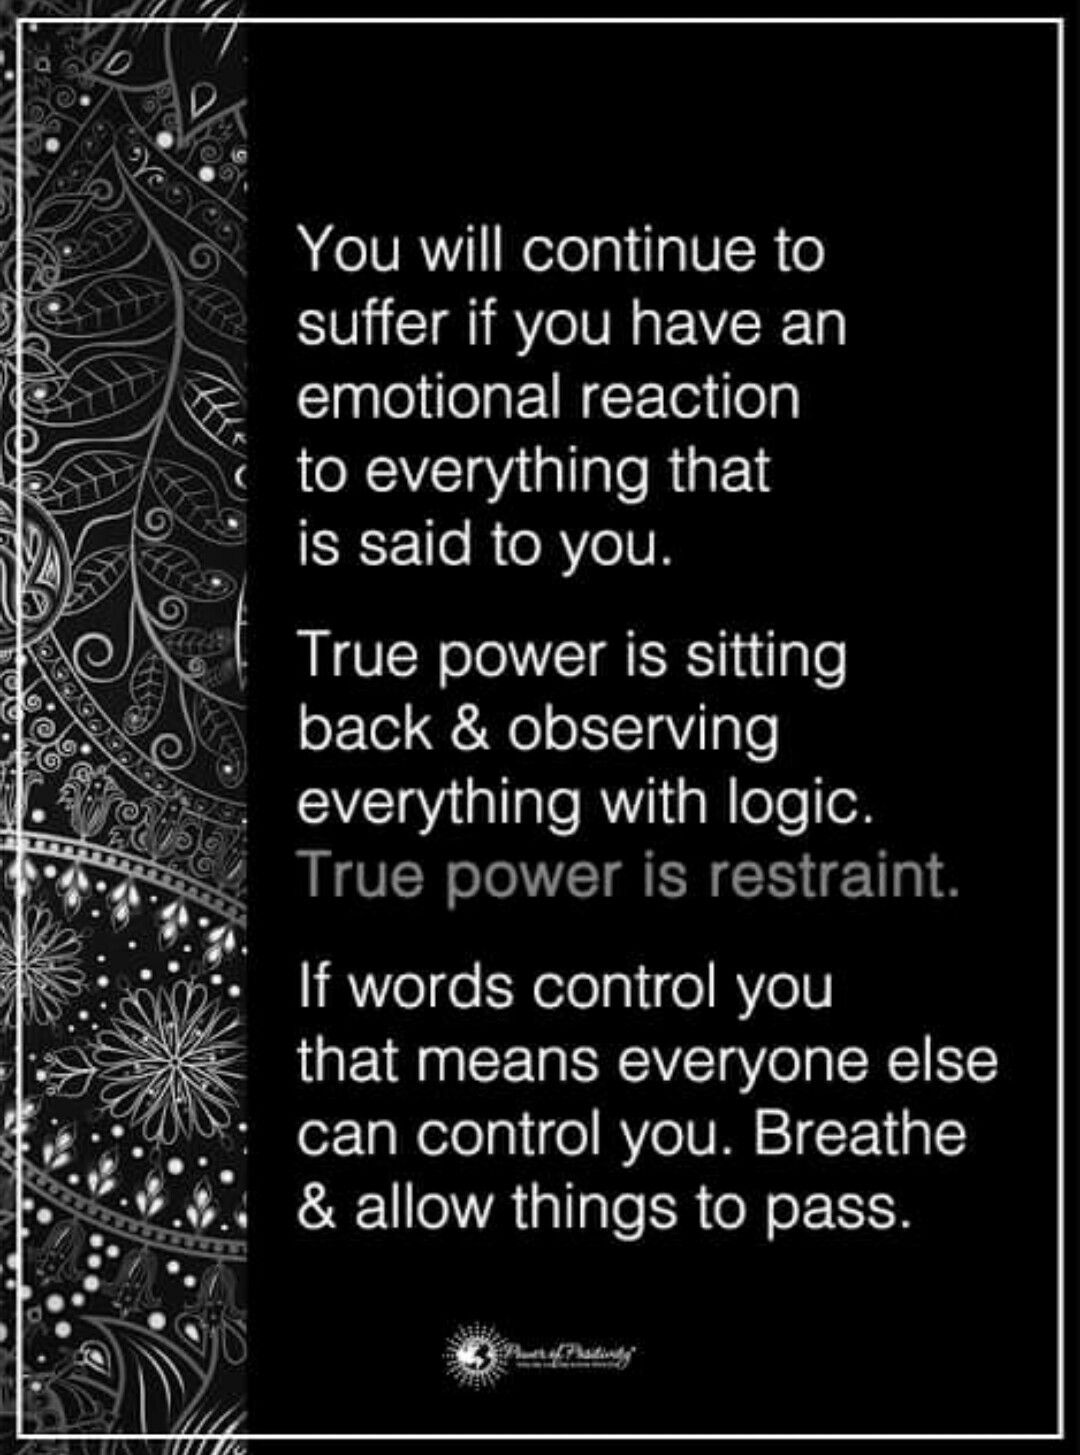 Emotional reaction true power restraint breathe zen